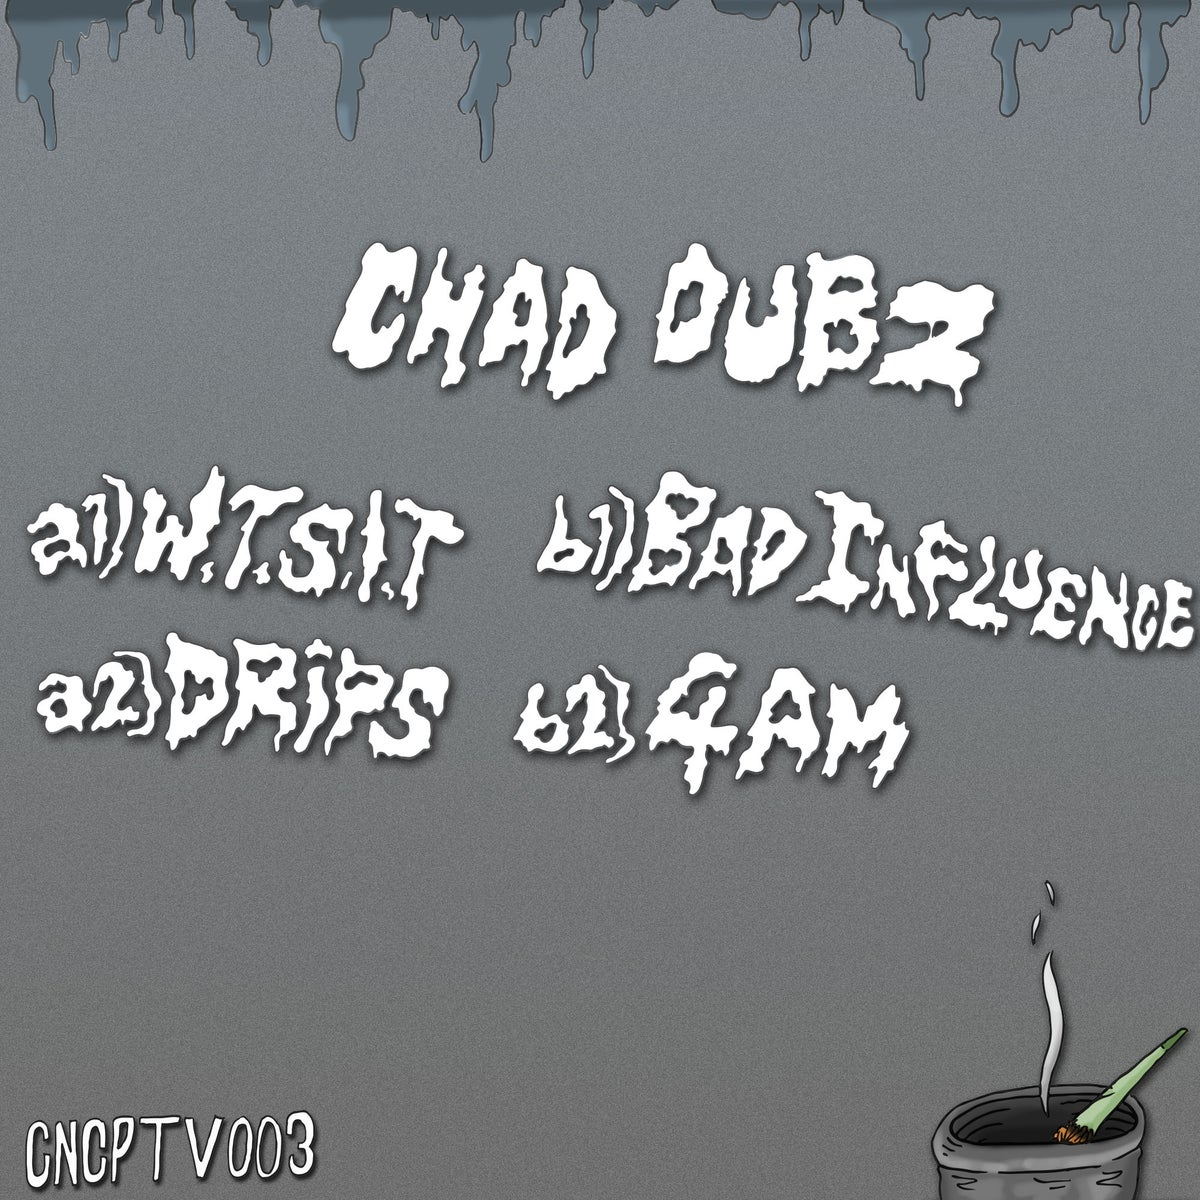 Image of CNCPTV003 - Chad Dubz - Bad Influence EP [OUT NOW]